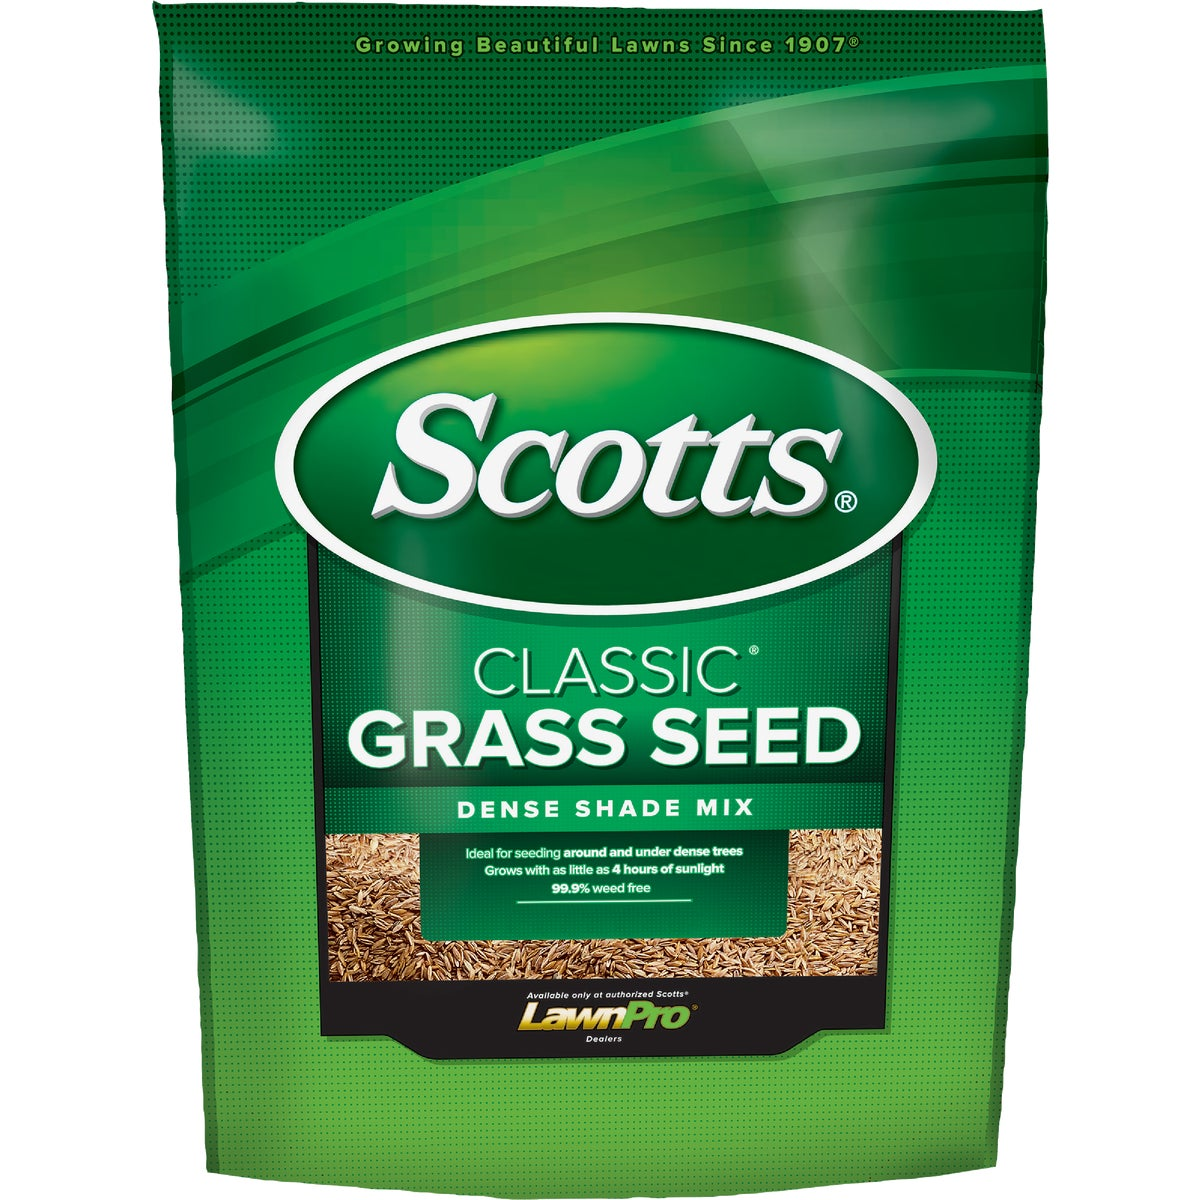 3LB CLSC DENSE SHADE MIX - 17290 by Scotts Company